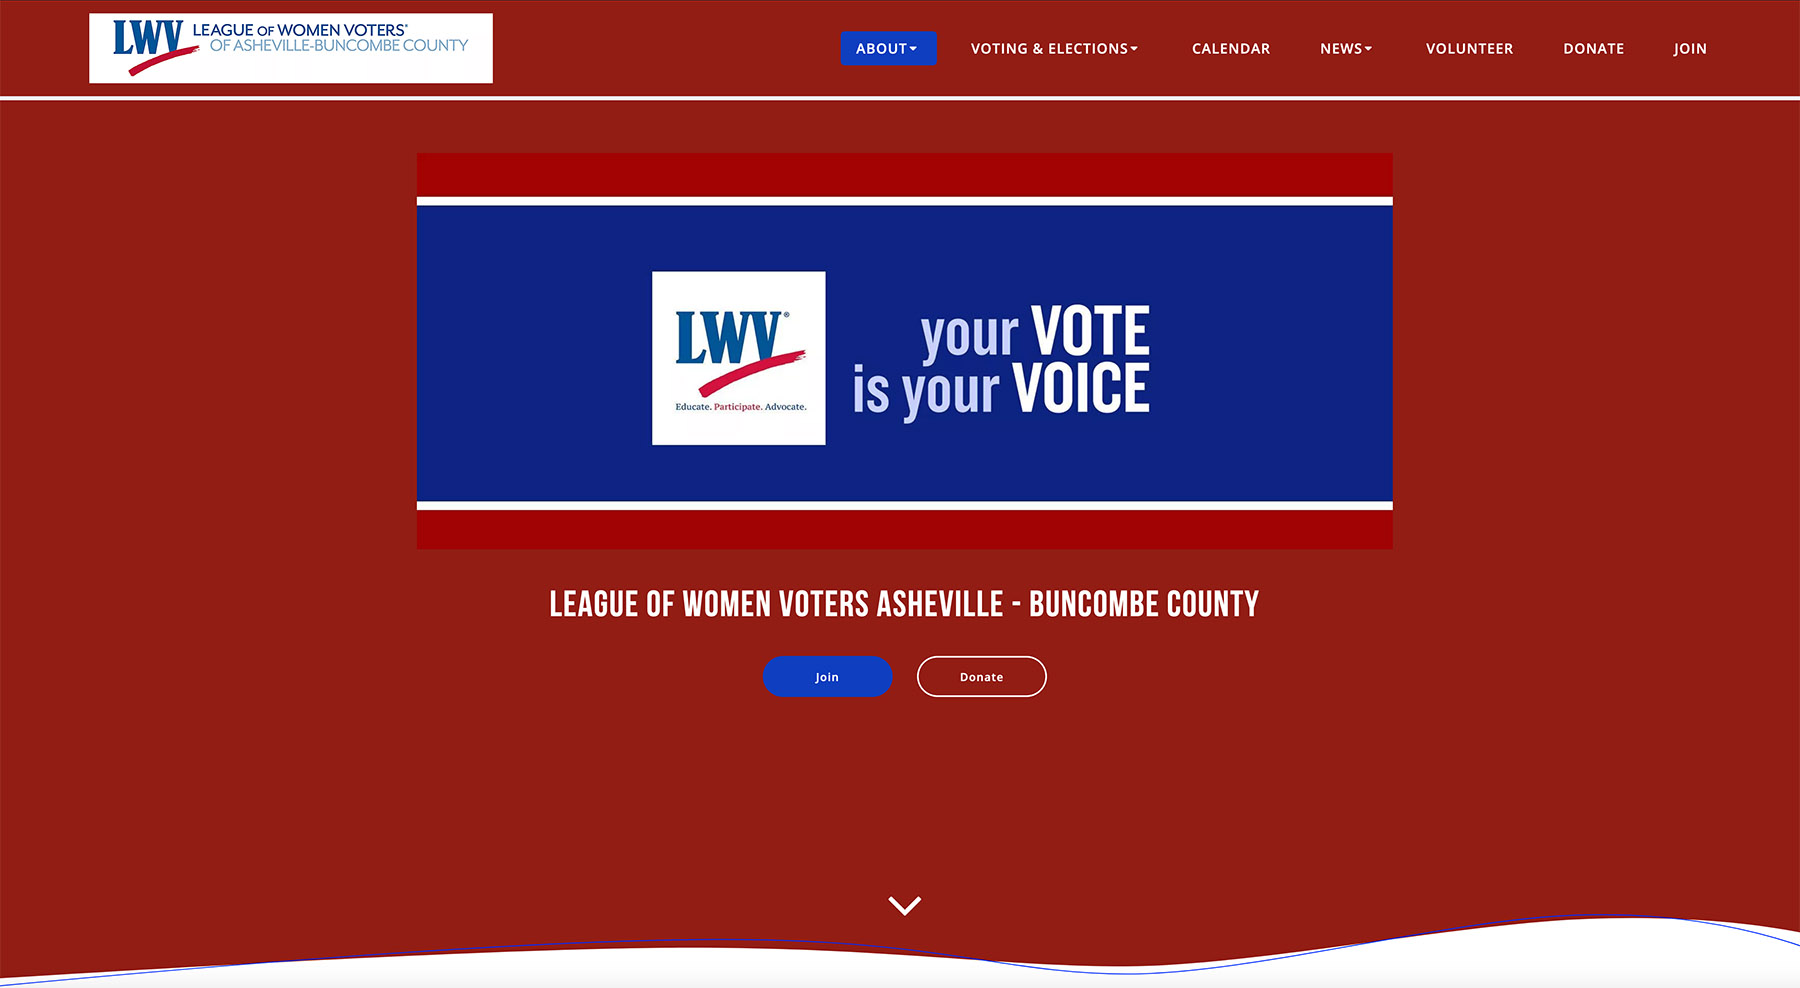 League of Women Voters Asheville - Buncombe